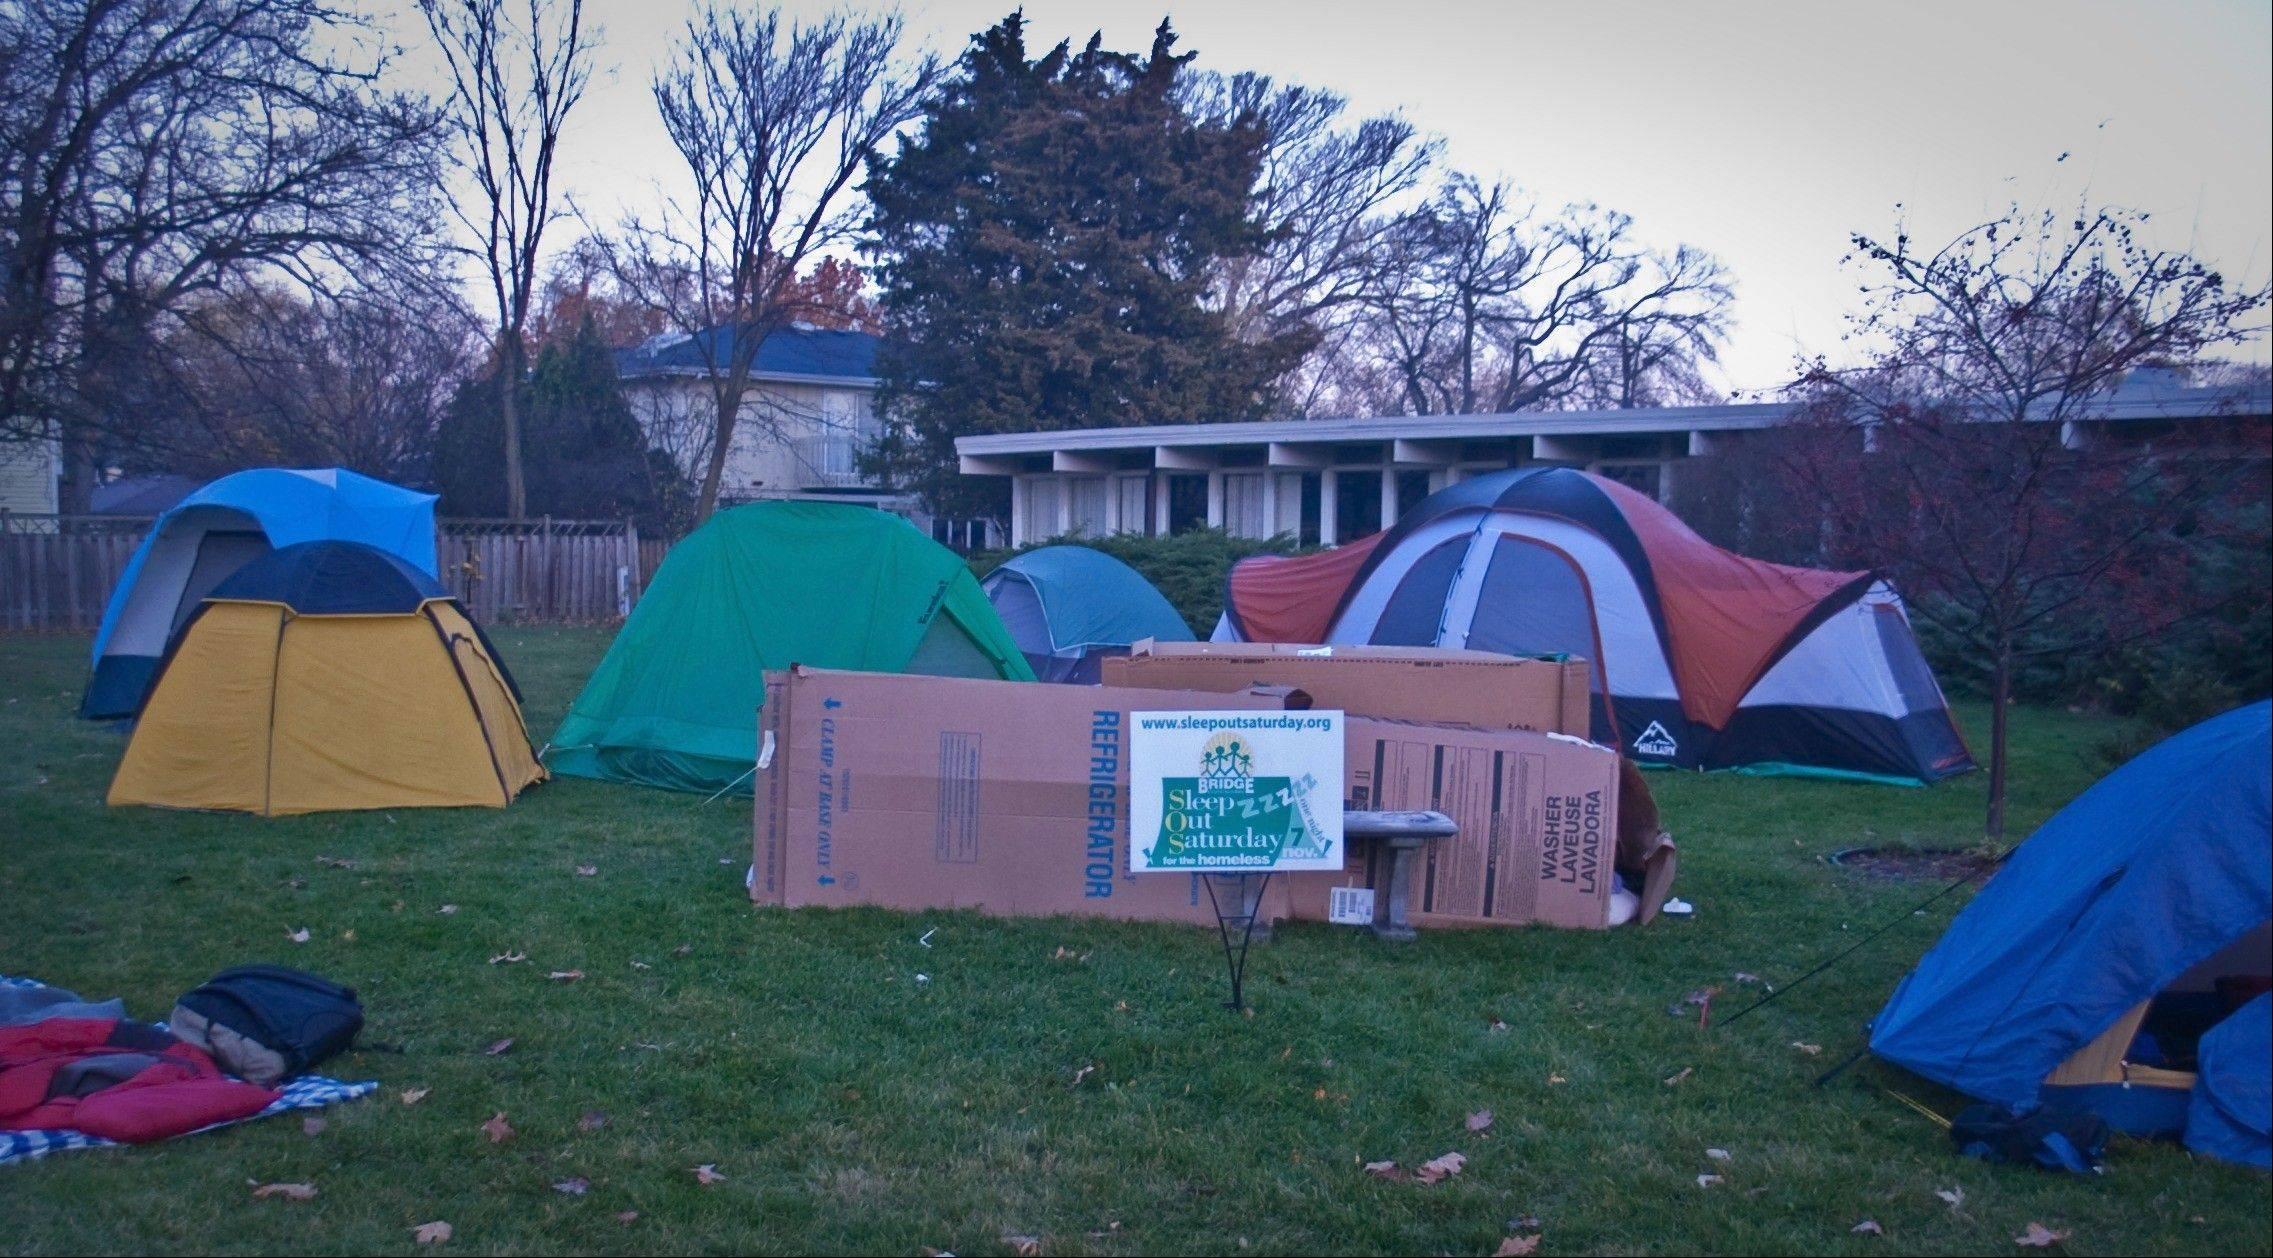 """Sleep Out Saturday"" raised more than $130,000 last year to help the homeless in DuPage County. (Courtesy of Bridge Communities)"